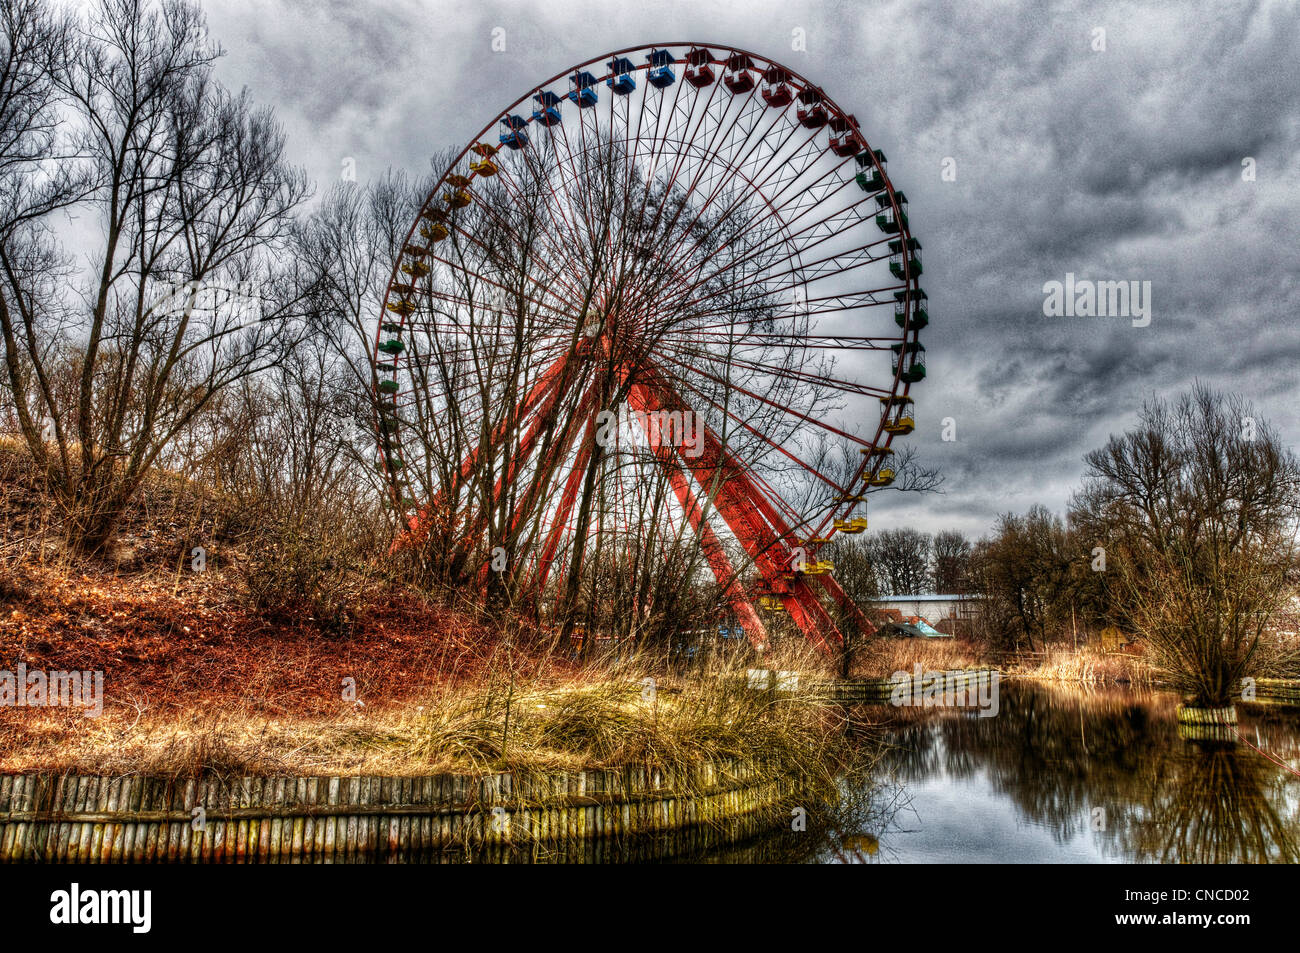 an-abandoned-big-wheel-funfair-in-treptower-park-aka-spreepark-in-CNCD02.jpg